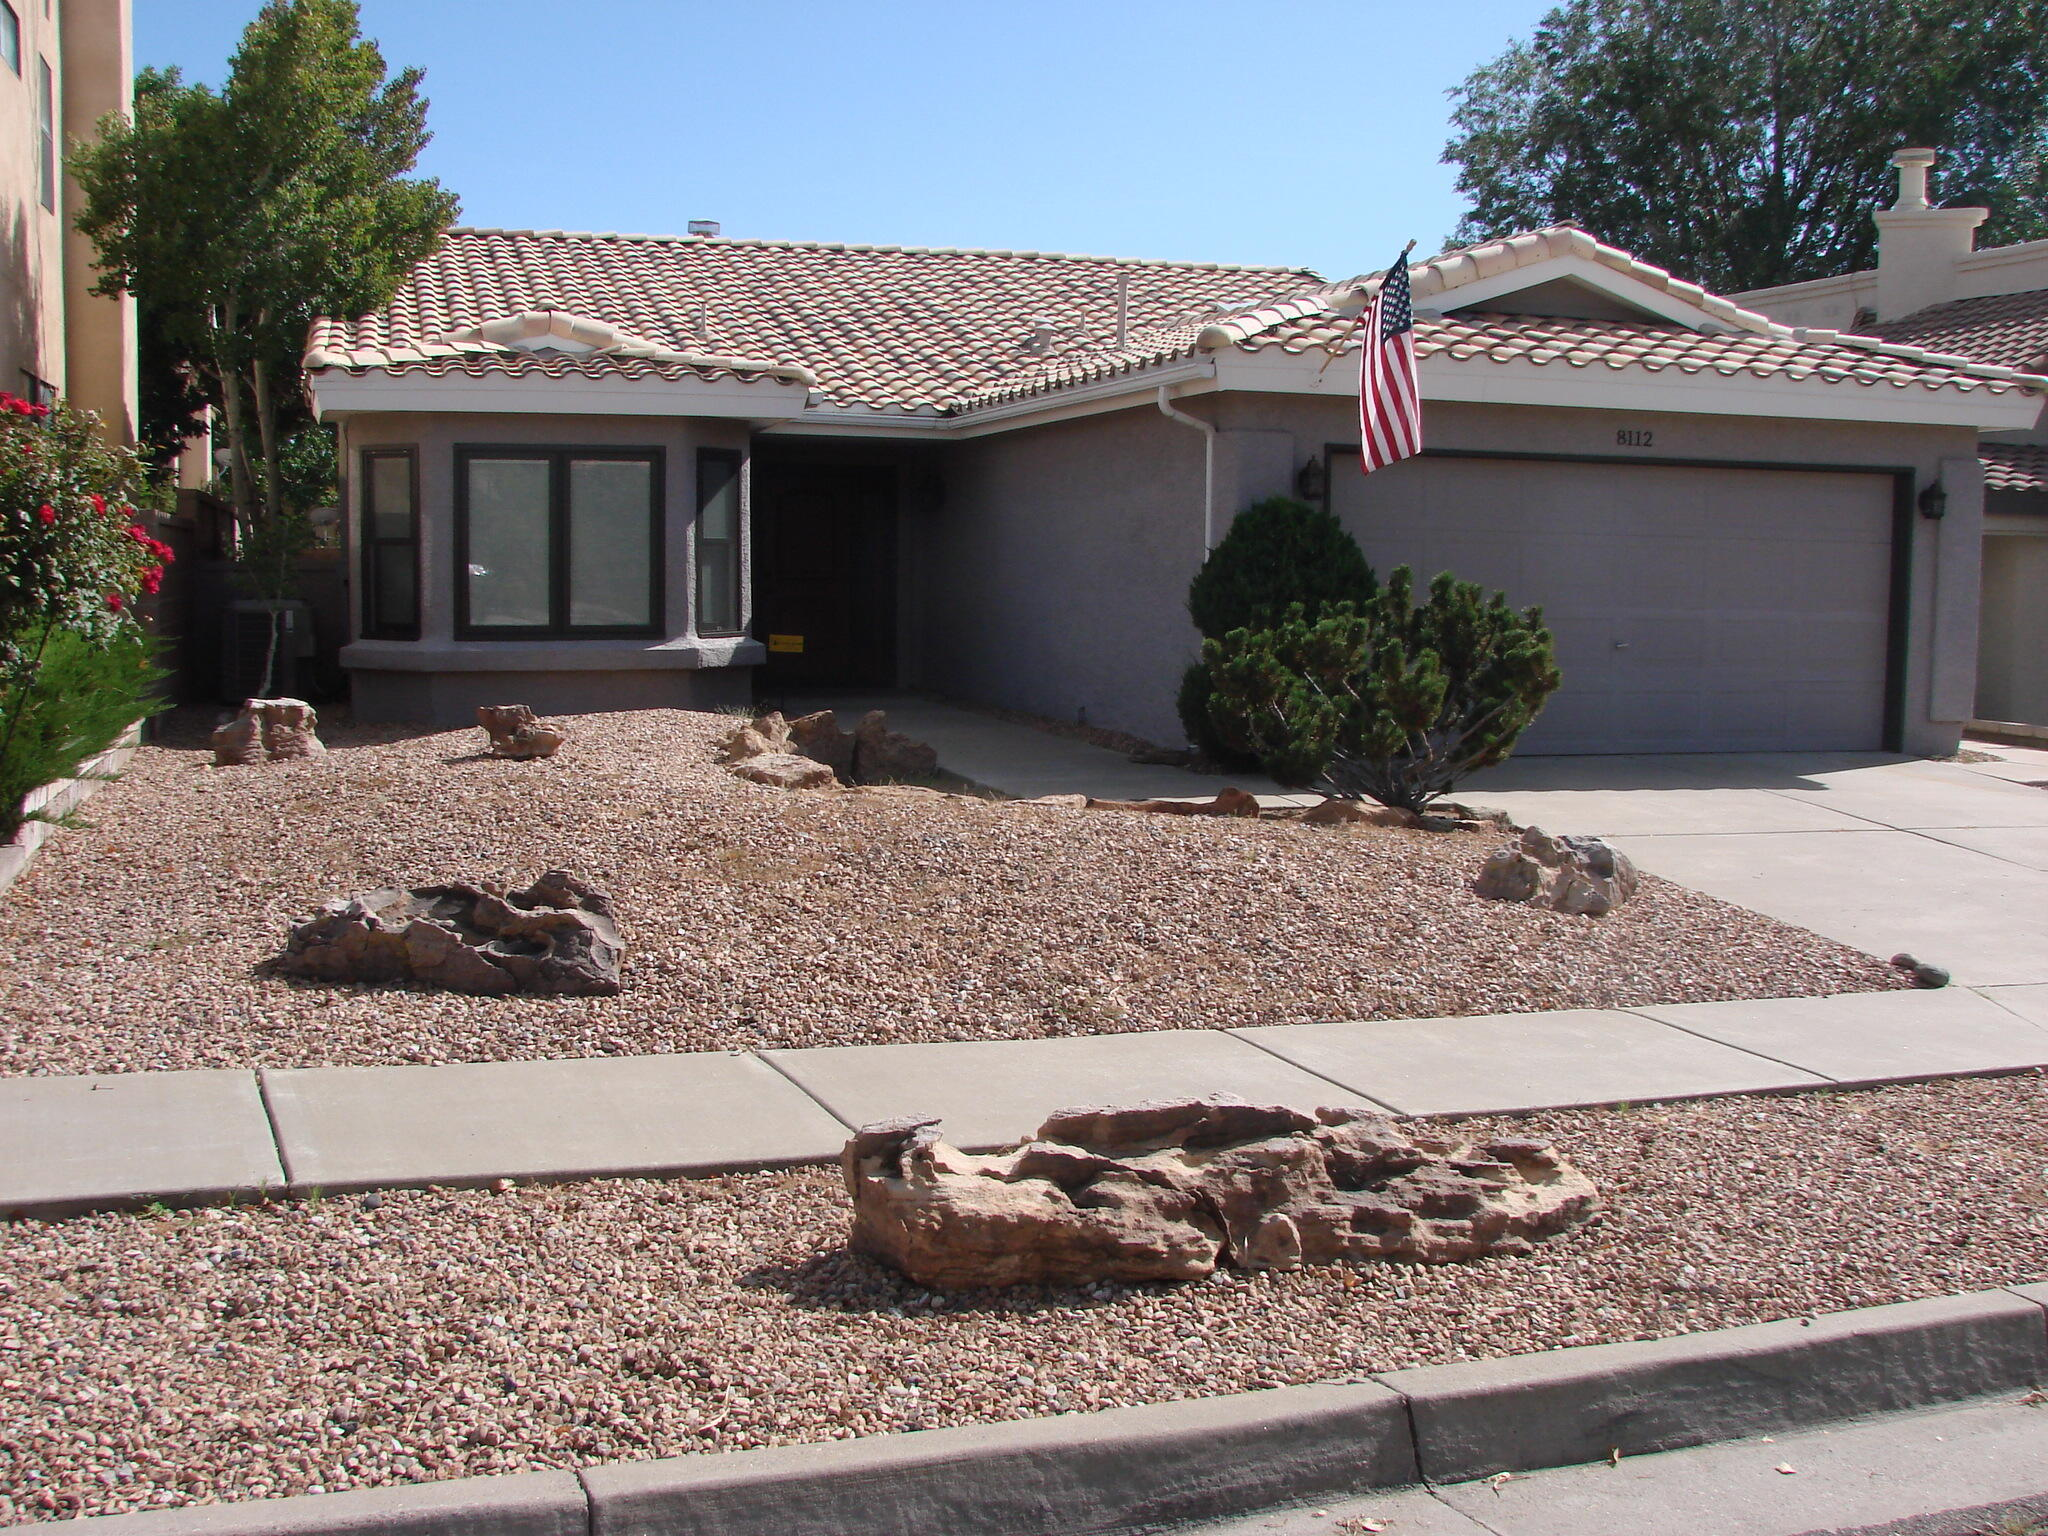 You will love this beautiful home located in the desirable La Cueva school district. Nicely landscaped front and back yards and lots of really great updates including new stucco sealant/paint, Bryant Refrigerated air and heating system, newer hot water heater, new carpet in the bedrooms, custom two tone paint through out, Pella windows and doors with built-in mini blinds, Maytag appliances and a really nice enclosed atrium patio off the master bedroom. Large master bathroom features a separate shower and garden tub. The backyard is super low maintenance. Would make a Perfect retirement home!Take the great feeling you get in this beautiful move in ready home and make it yours today!